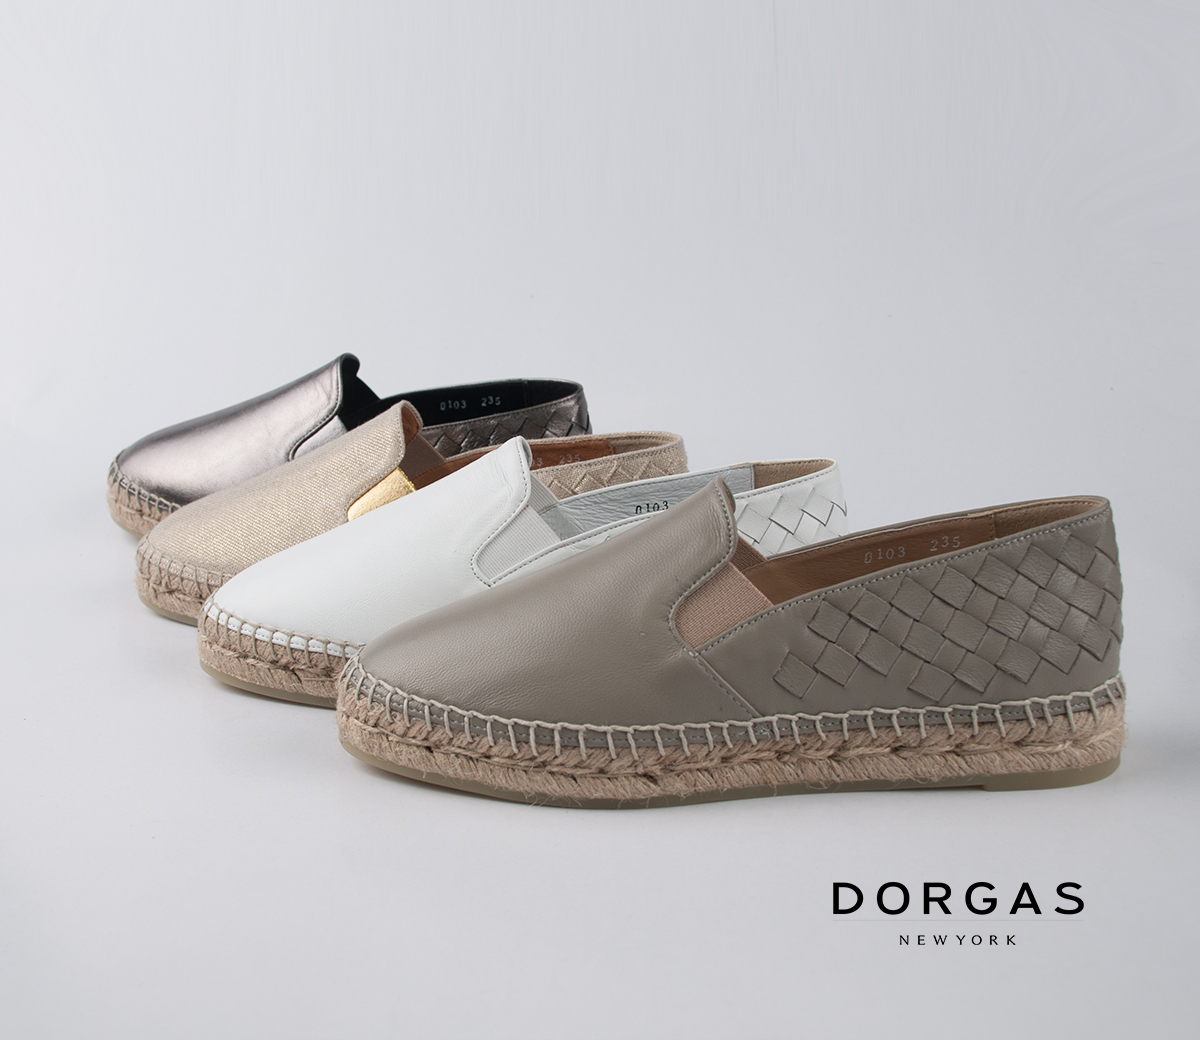 DN0103 shoes